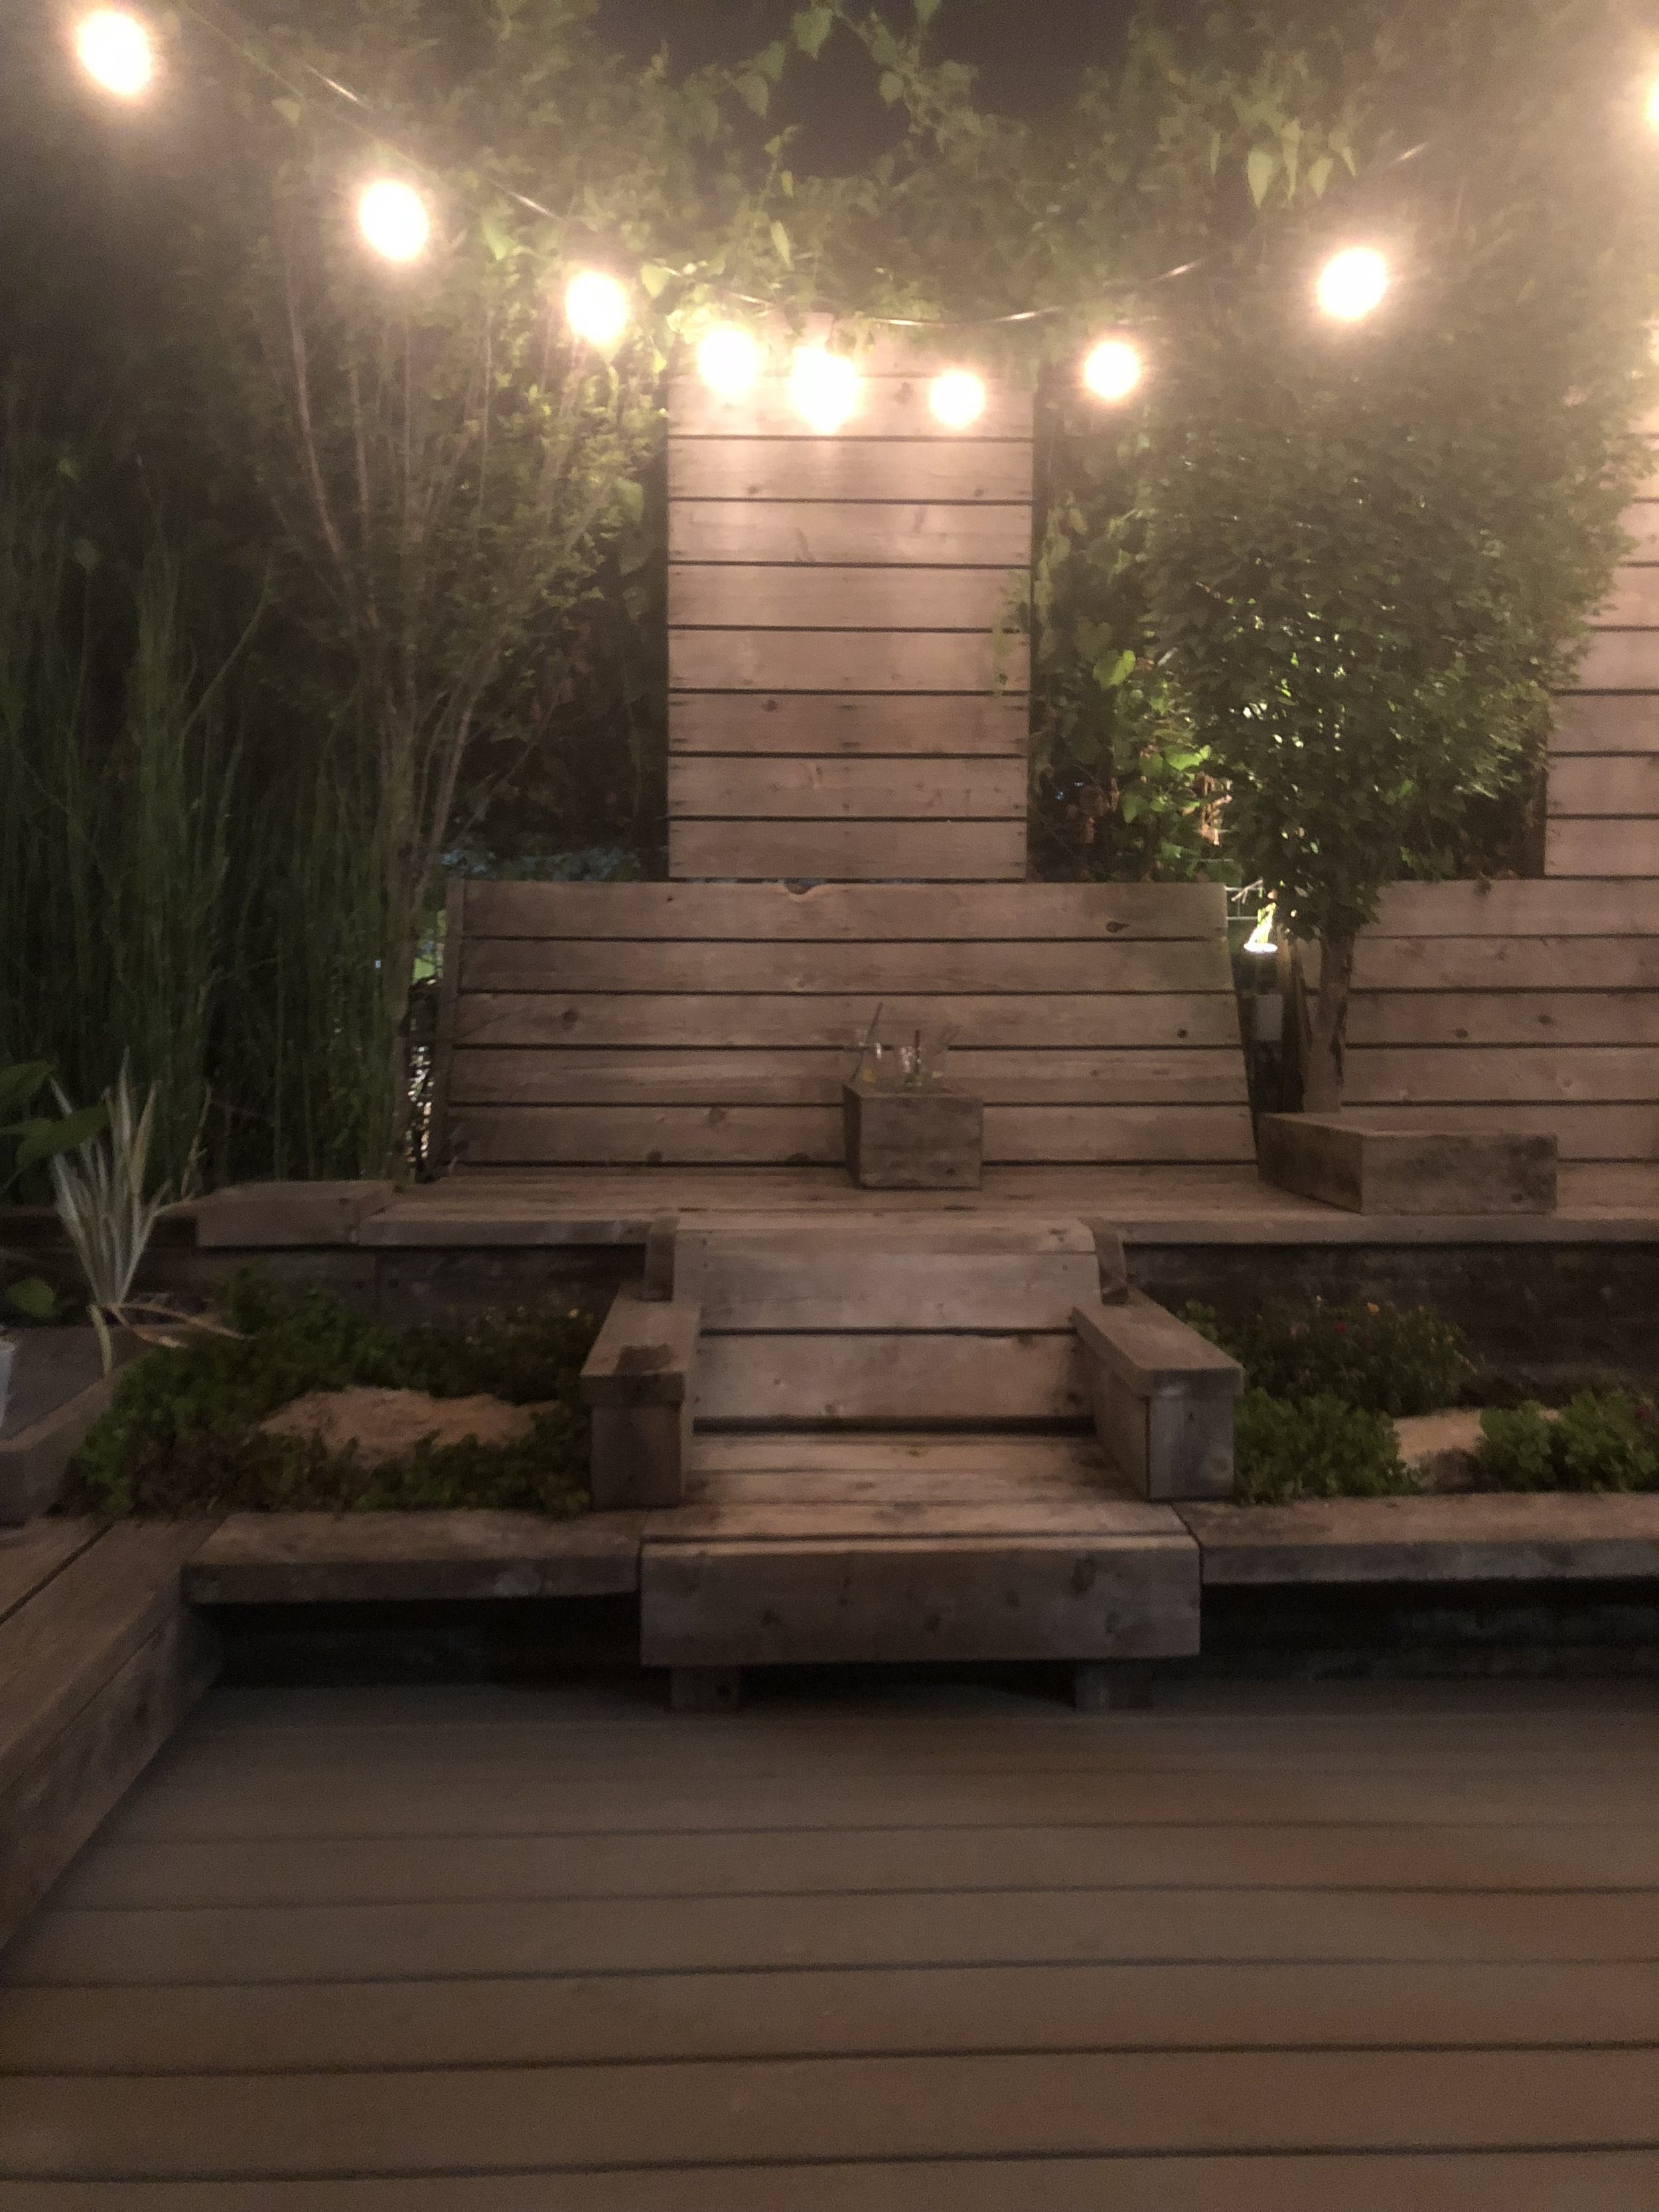 The cozy, dreamy outdoor patio at the Greenhouse Bar.